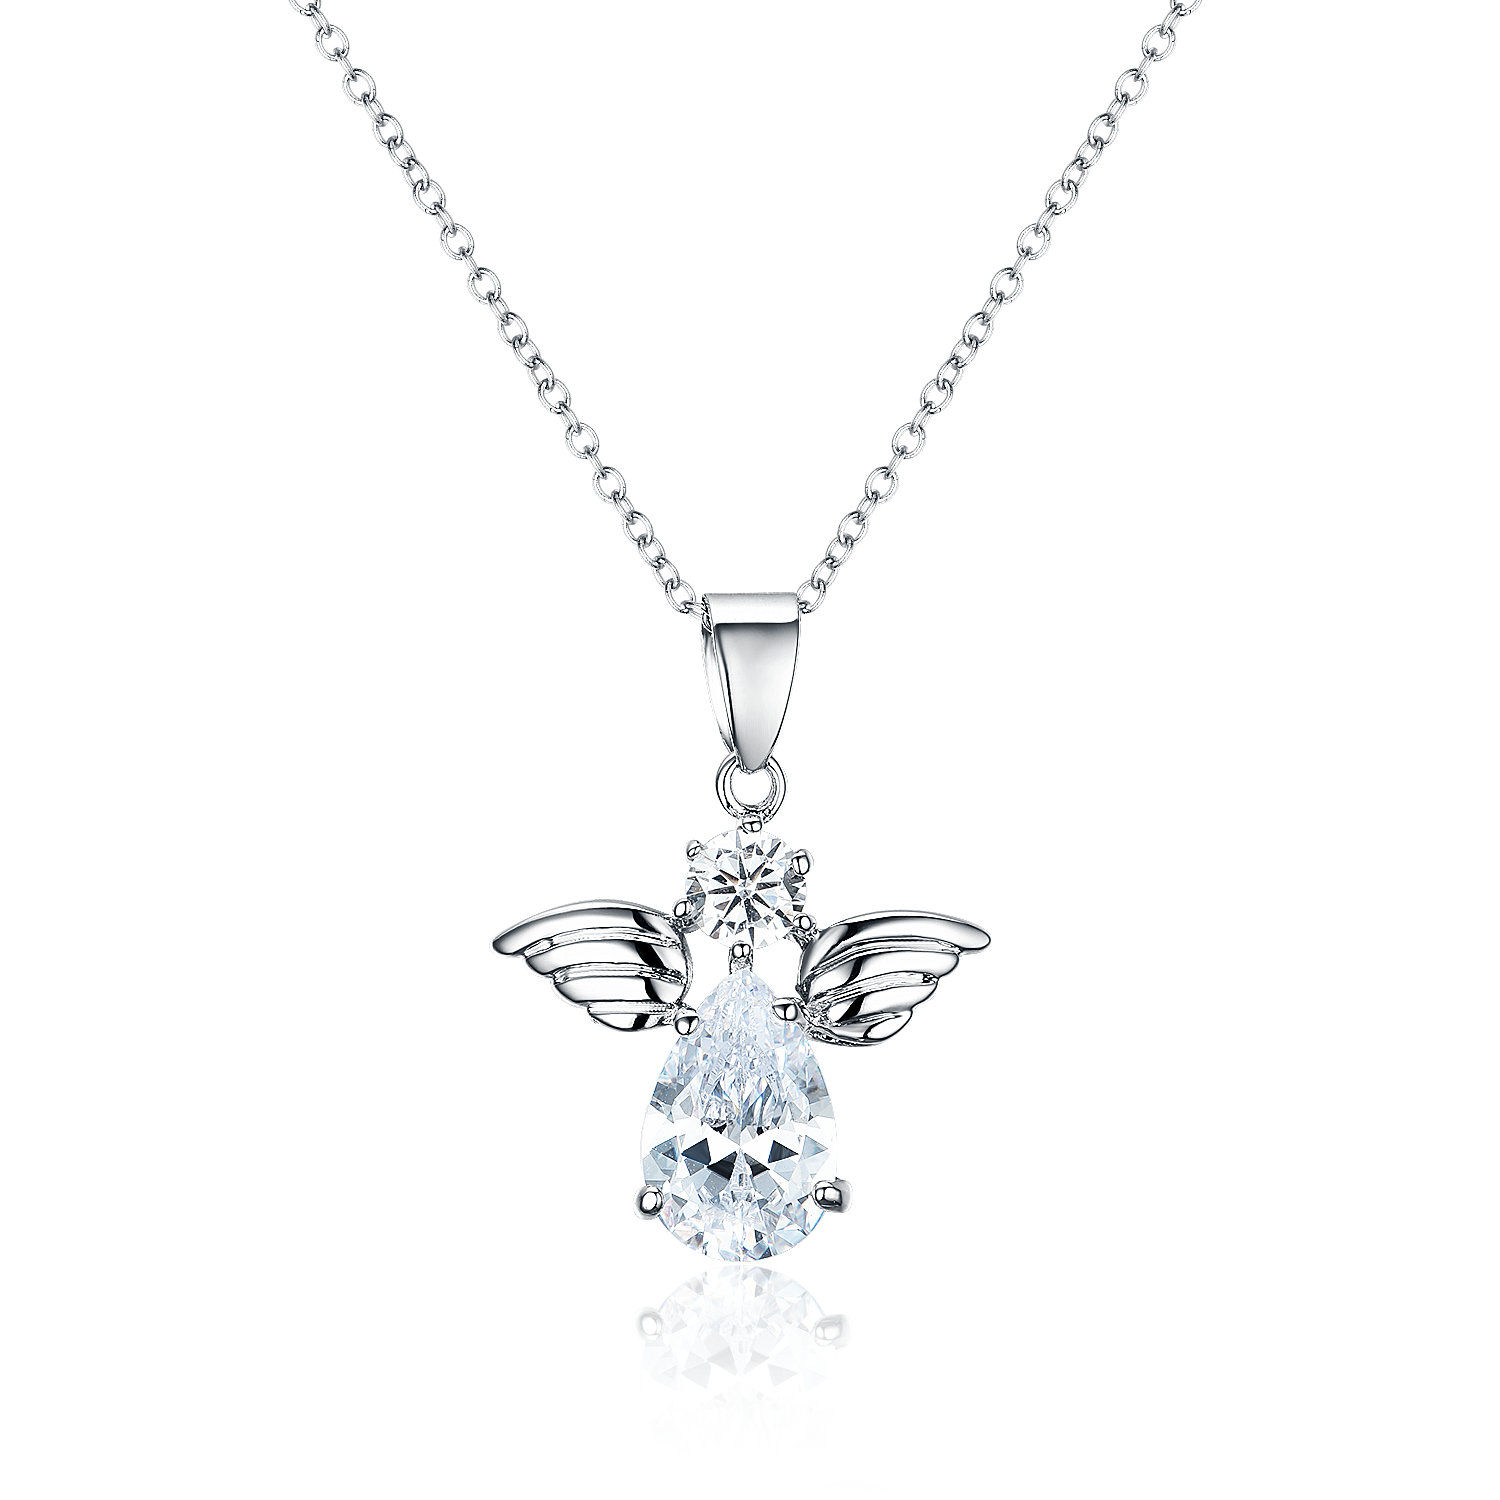 PE3500-Classic & Timeless Angel Pendant with a Round and Pear Shape CZ in Sterling Silver/Brass under Rhodium plating from China Top Jewelry vendor